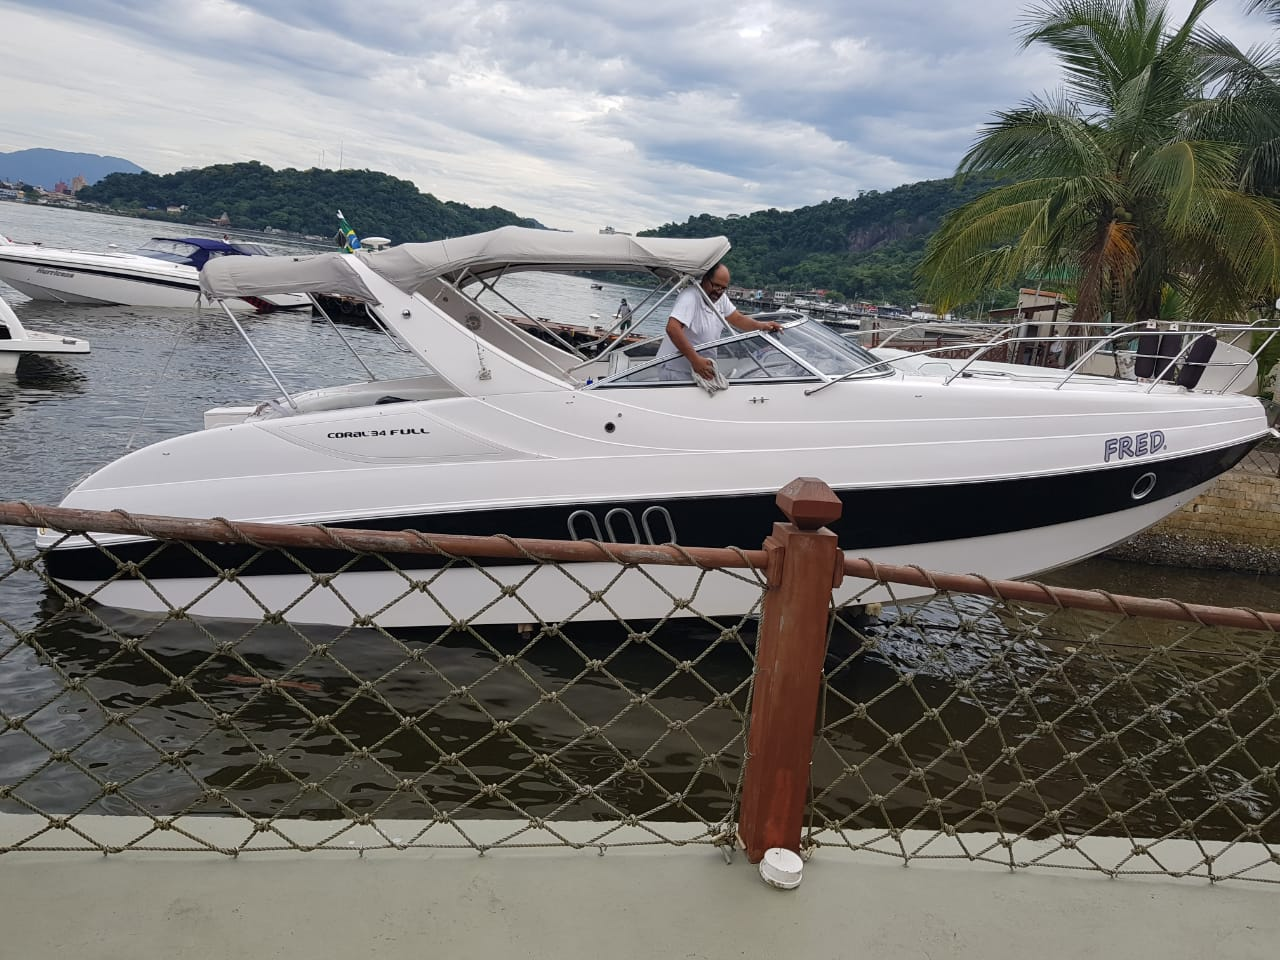 Coral 34 Full